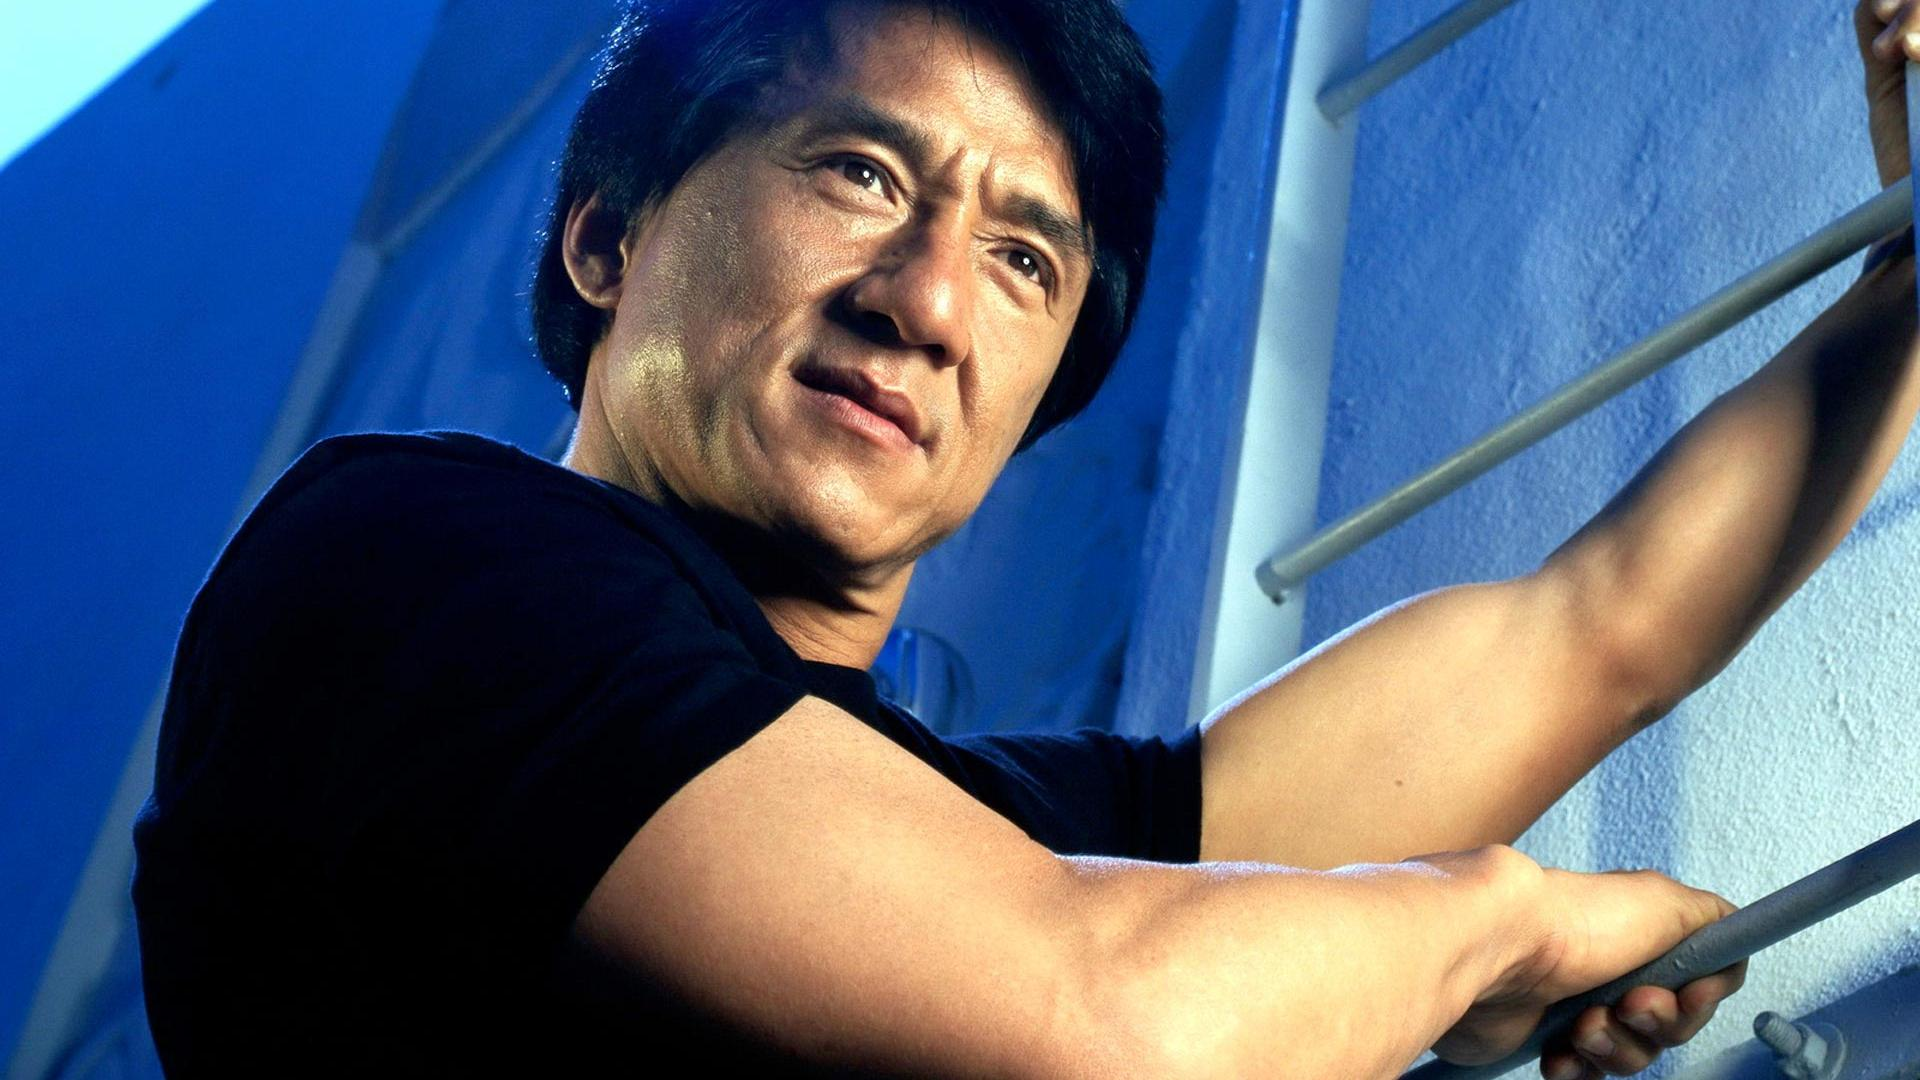 Jackie chan hd wallpaper background image 1920x1080 id 463250 wallpaper abyss - Jackie chan wallpaper download ...